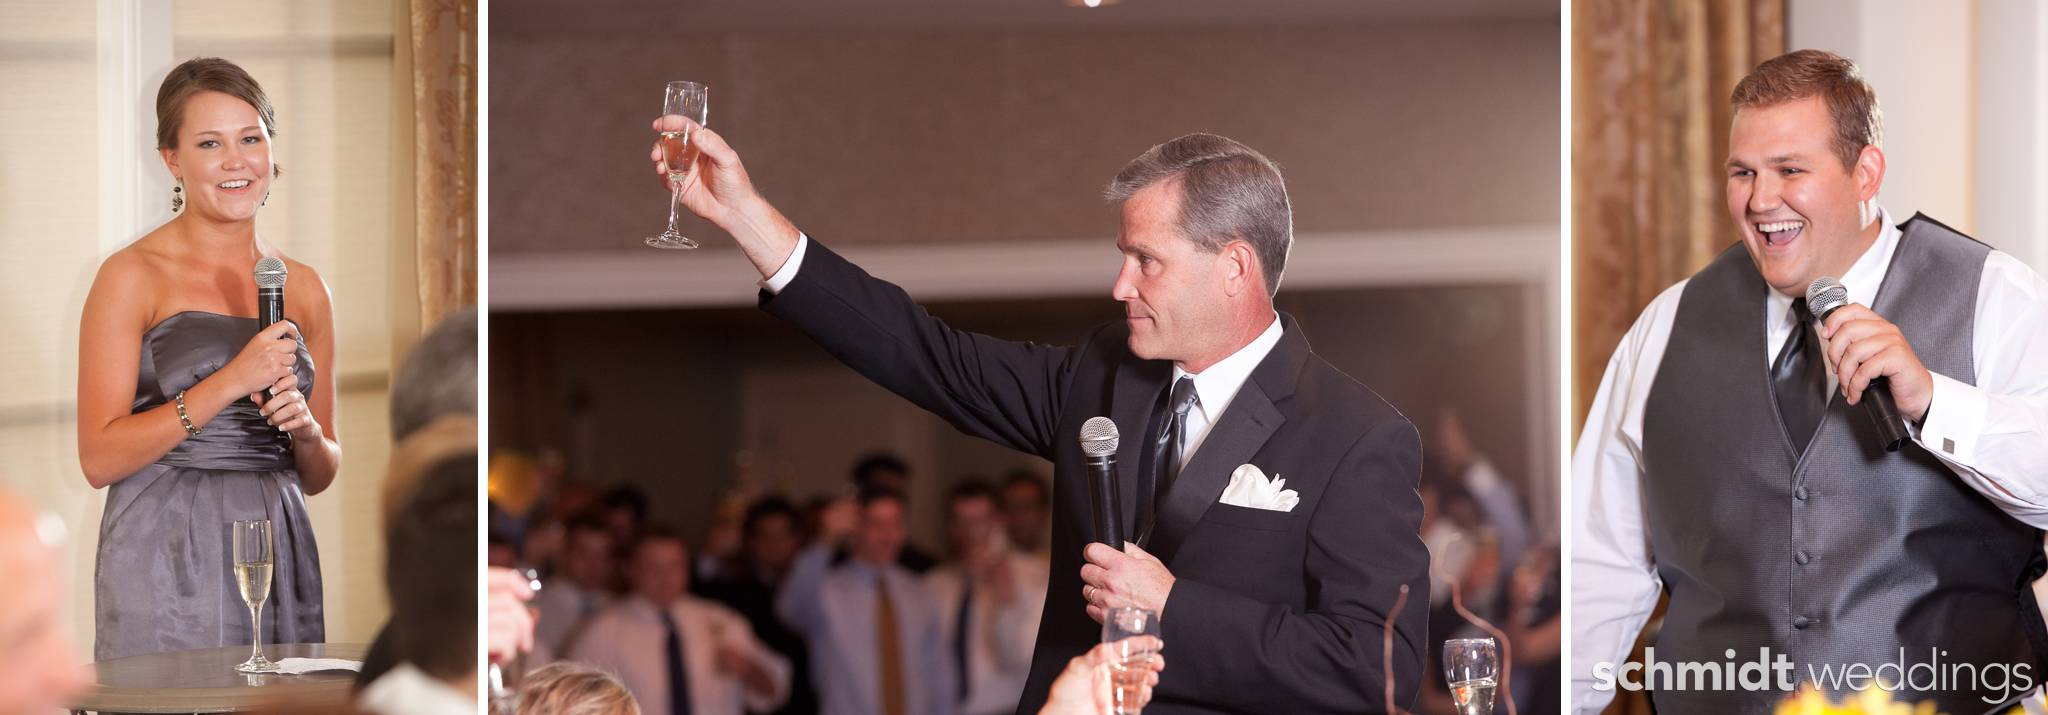 Groomsman speech ideas for wedding